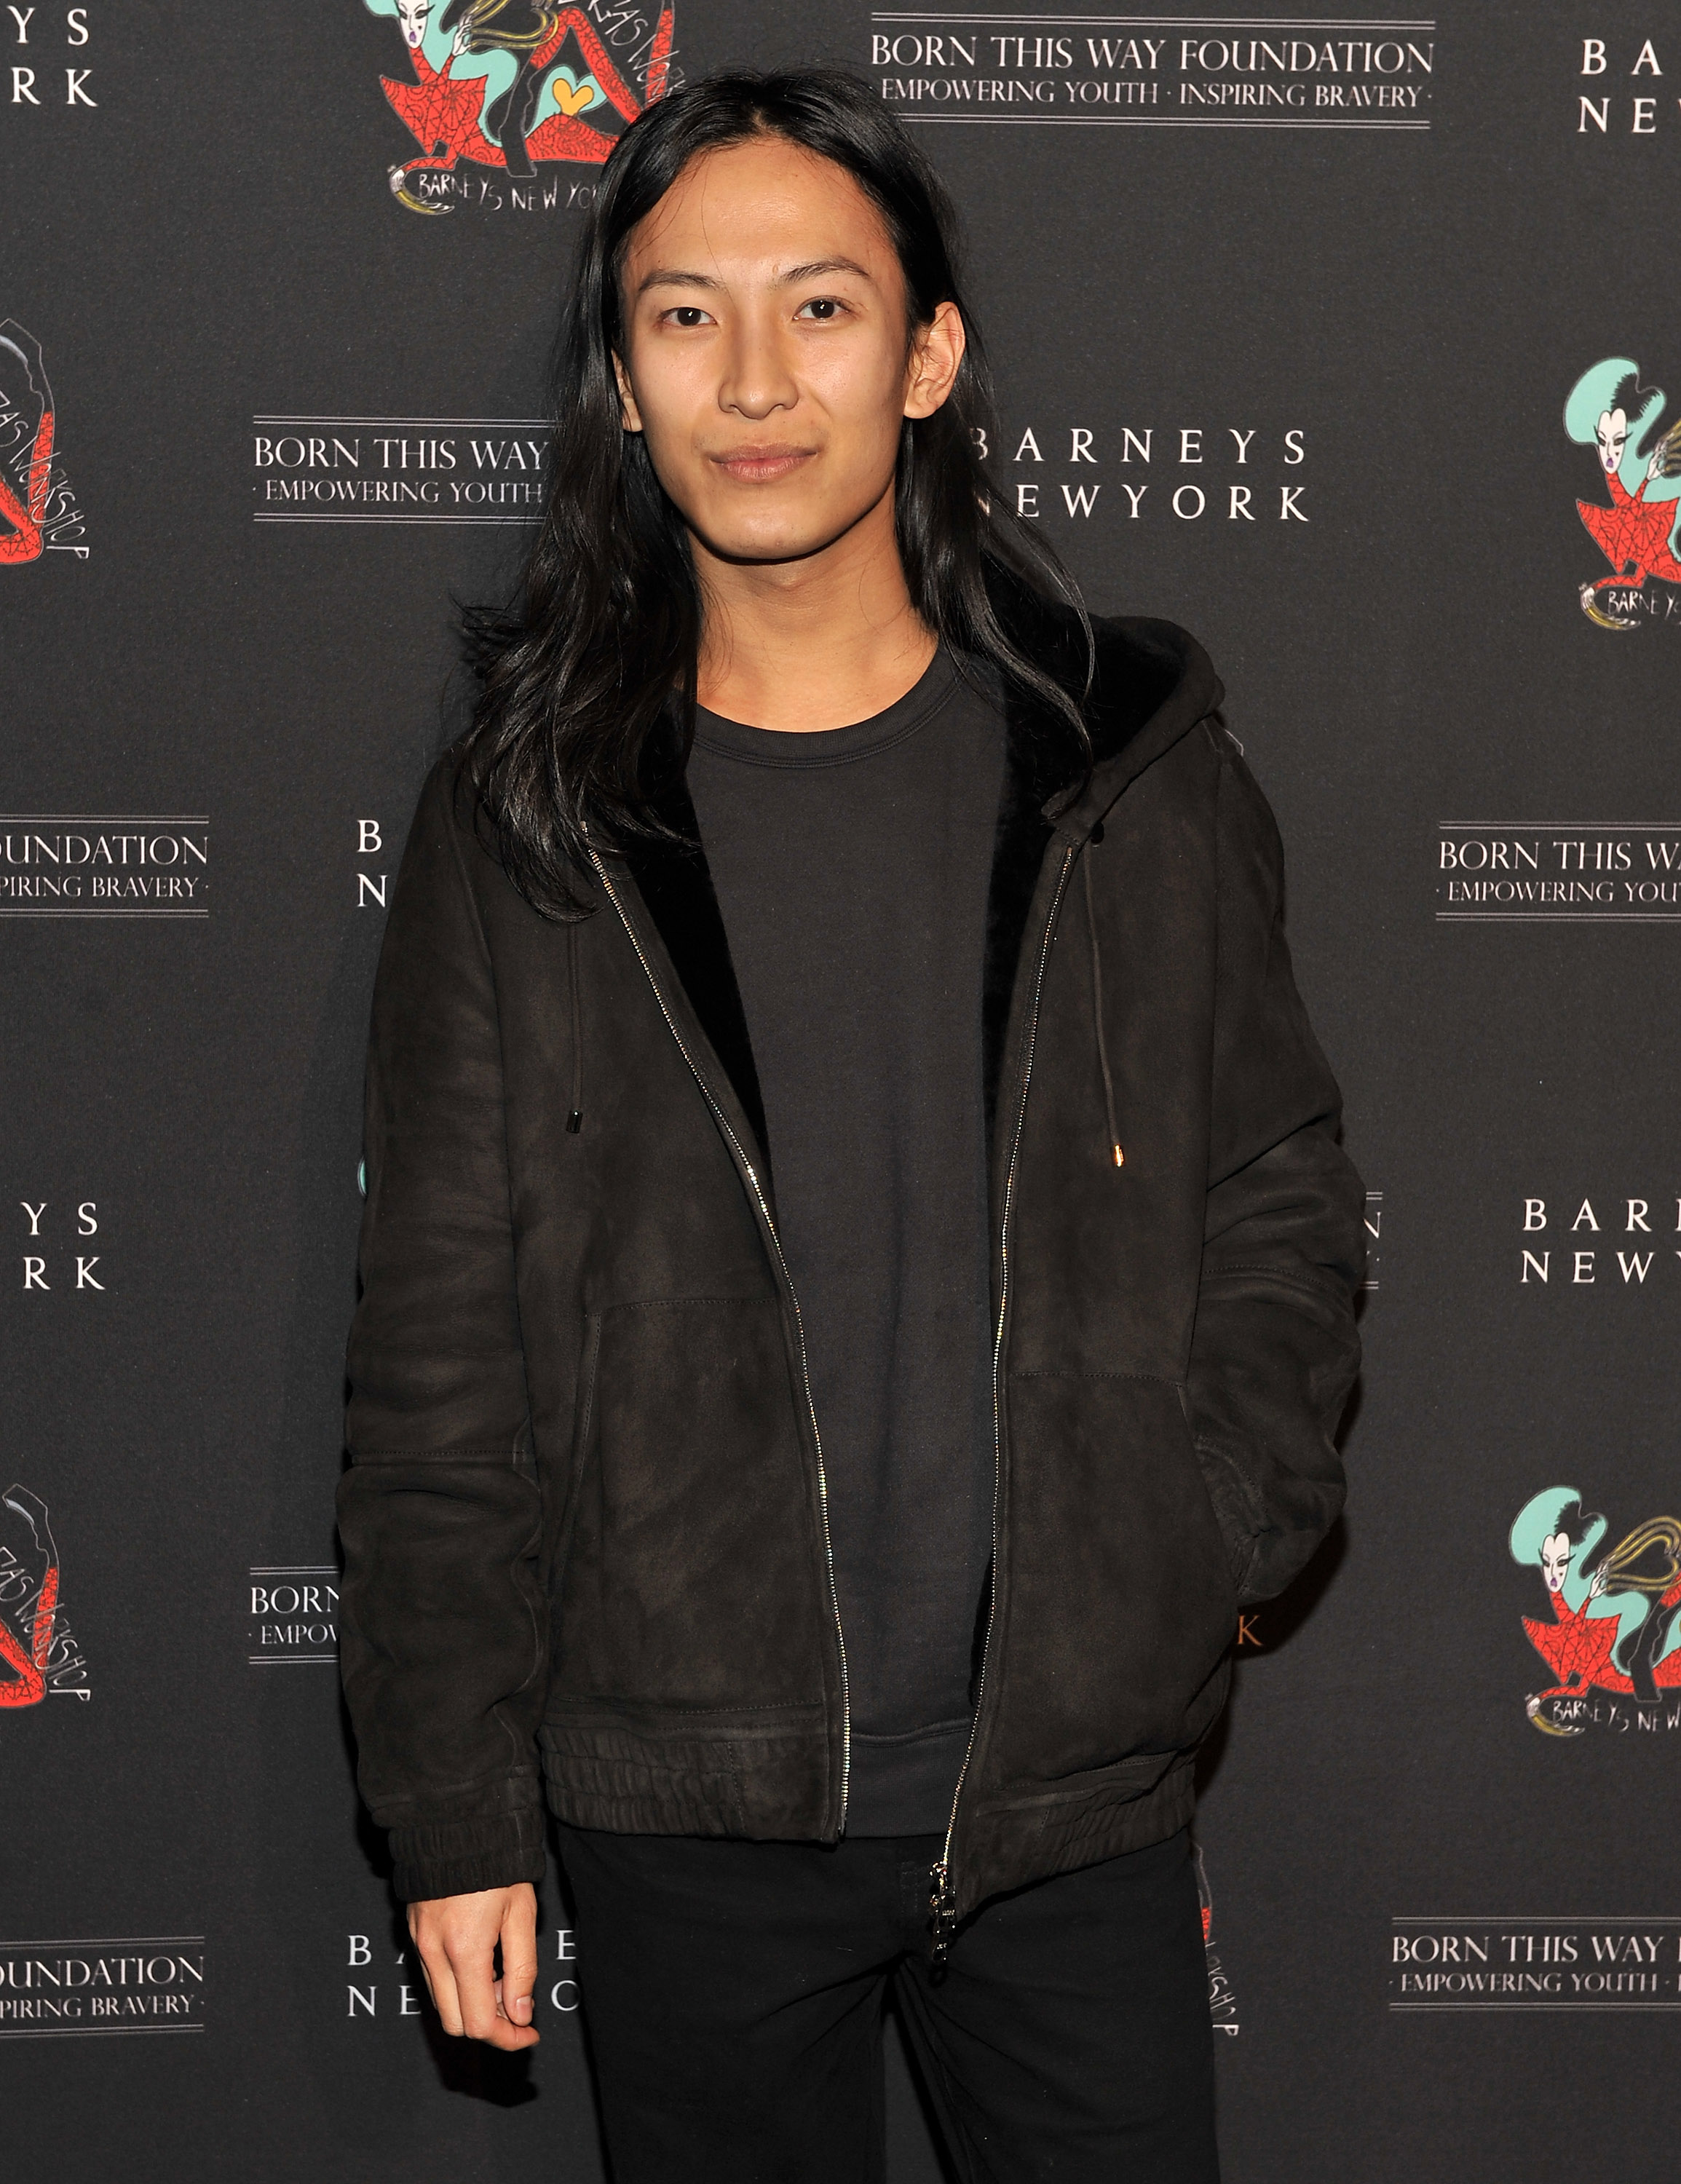 Alexander Wang attended the party in NYC.